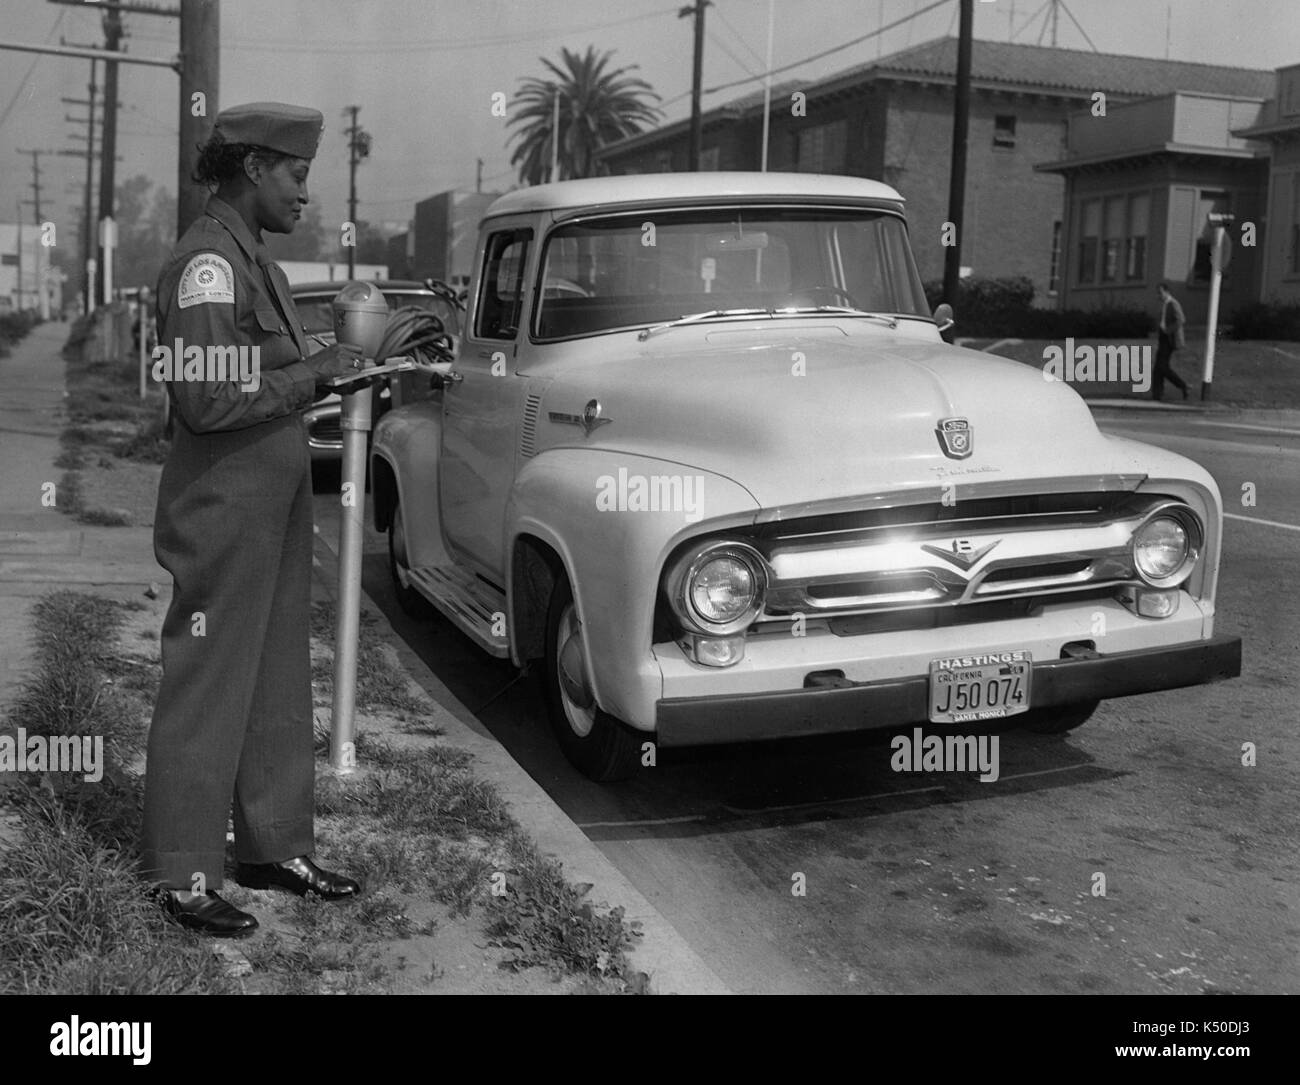 Traffic Warden and parking meter, Los Angeles 1958 - Stock Image